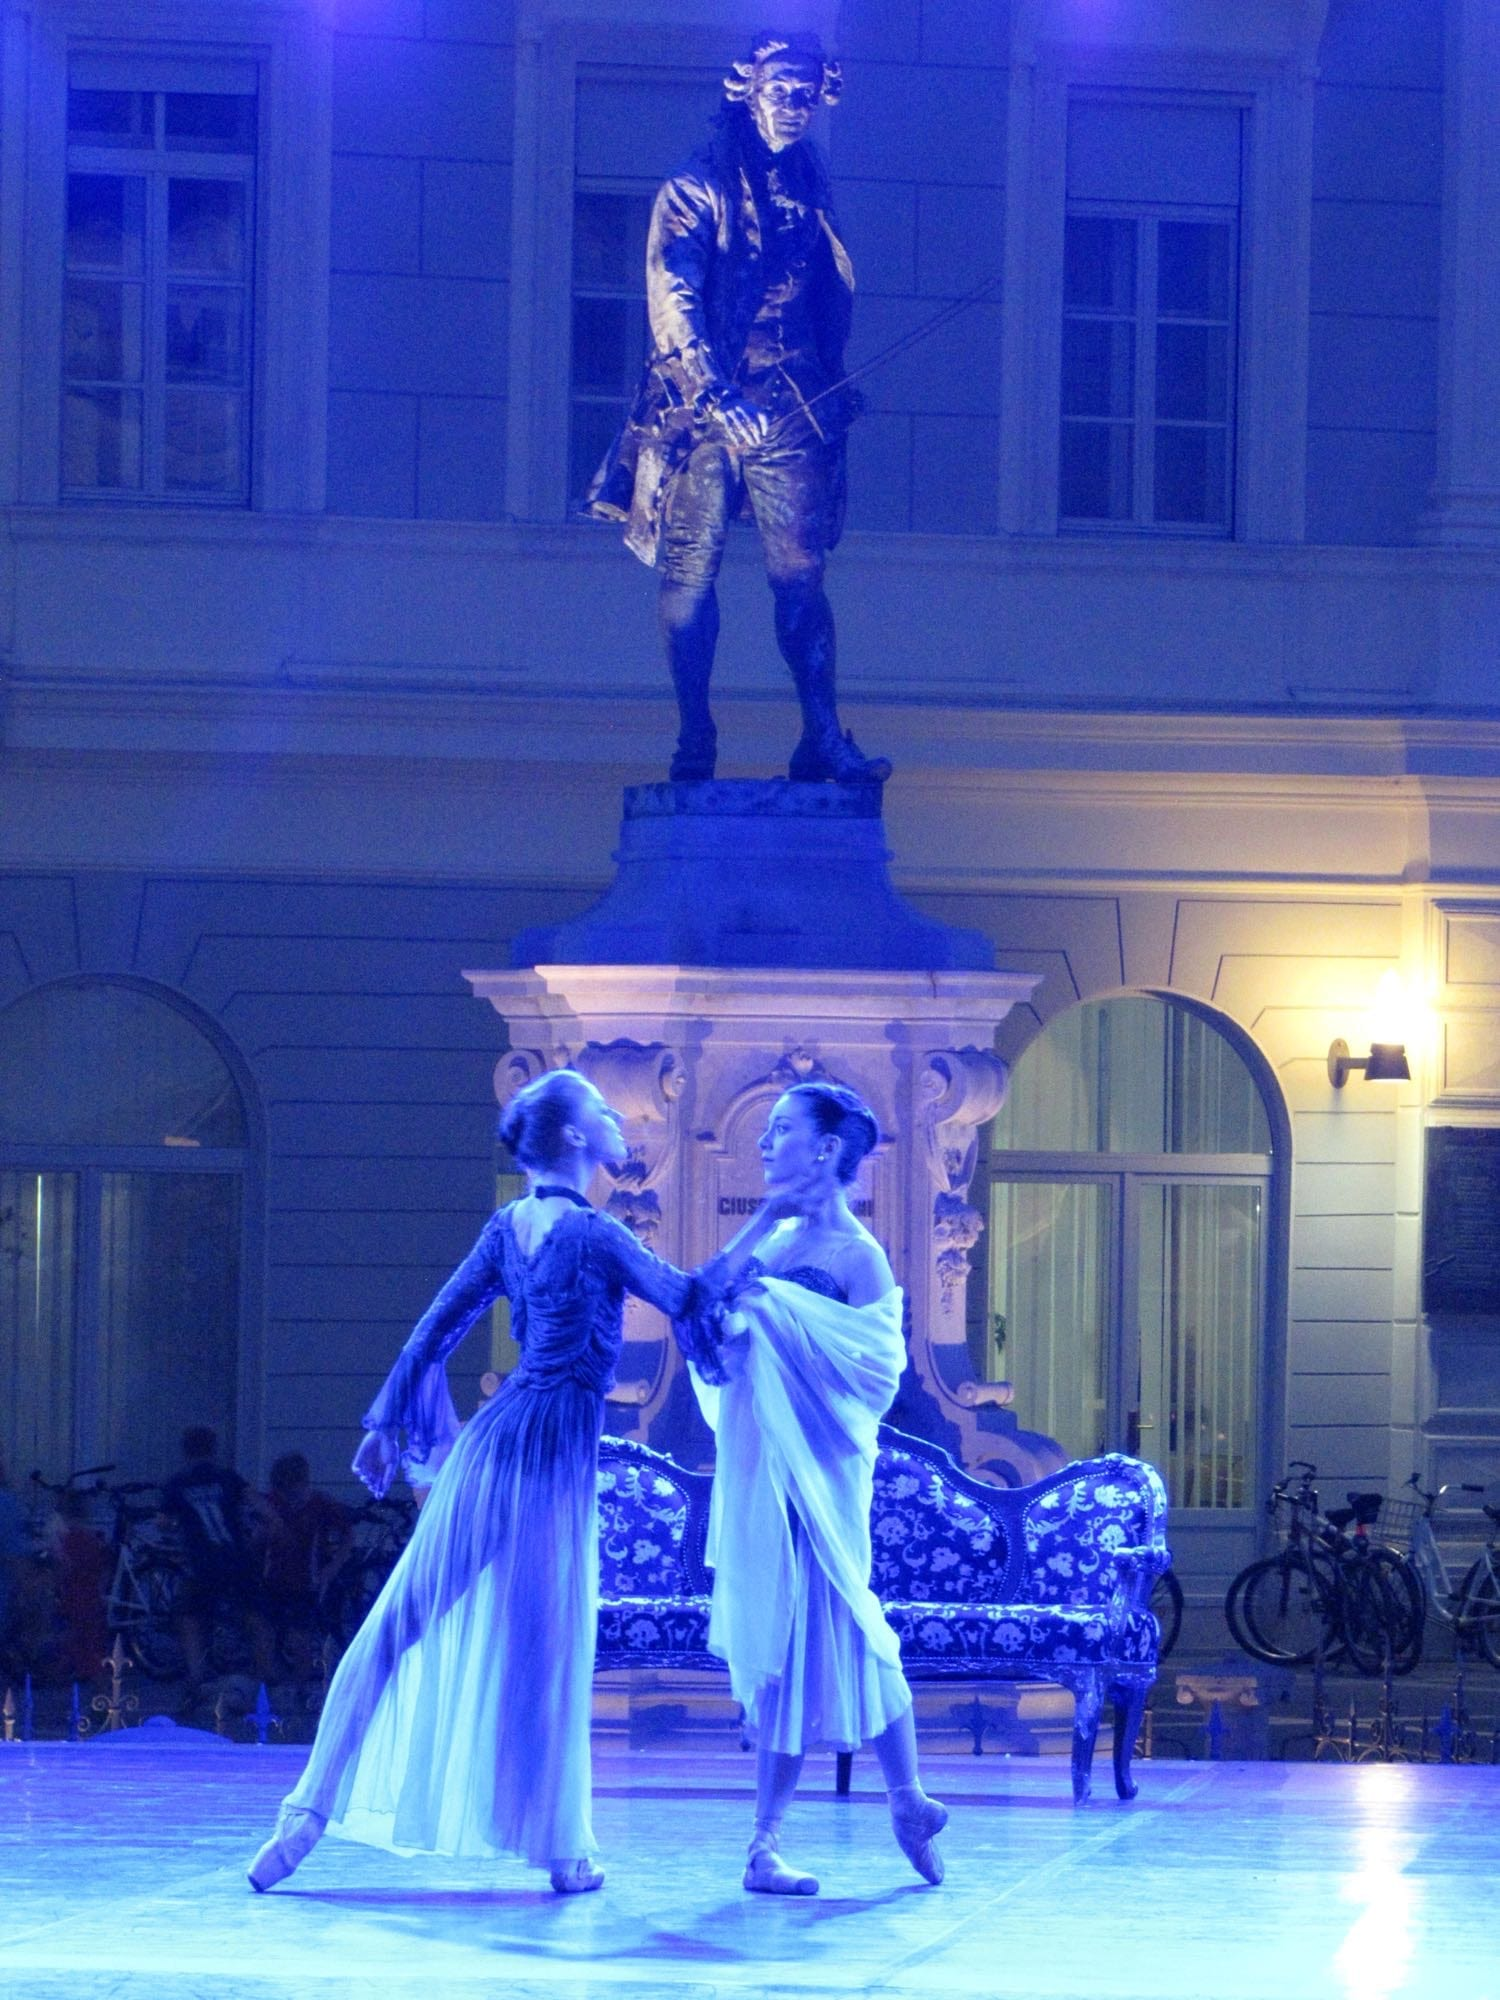 IMG_2070_res-2